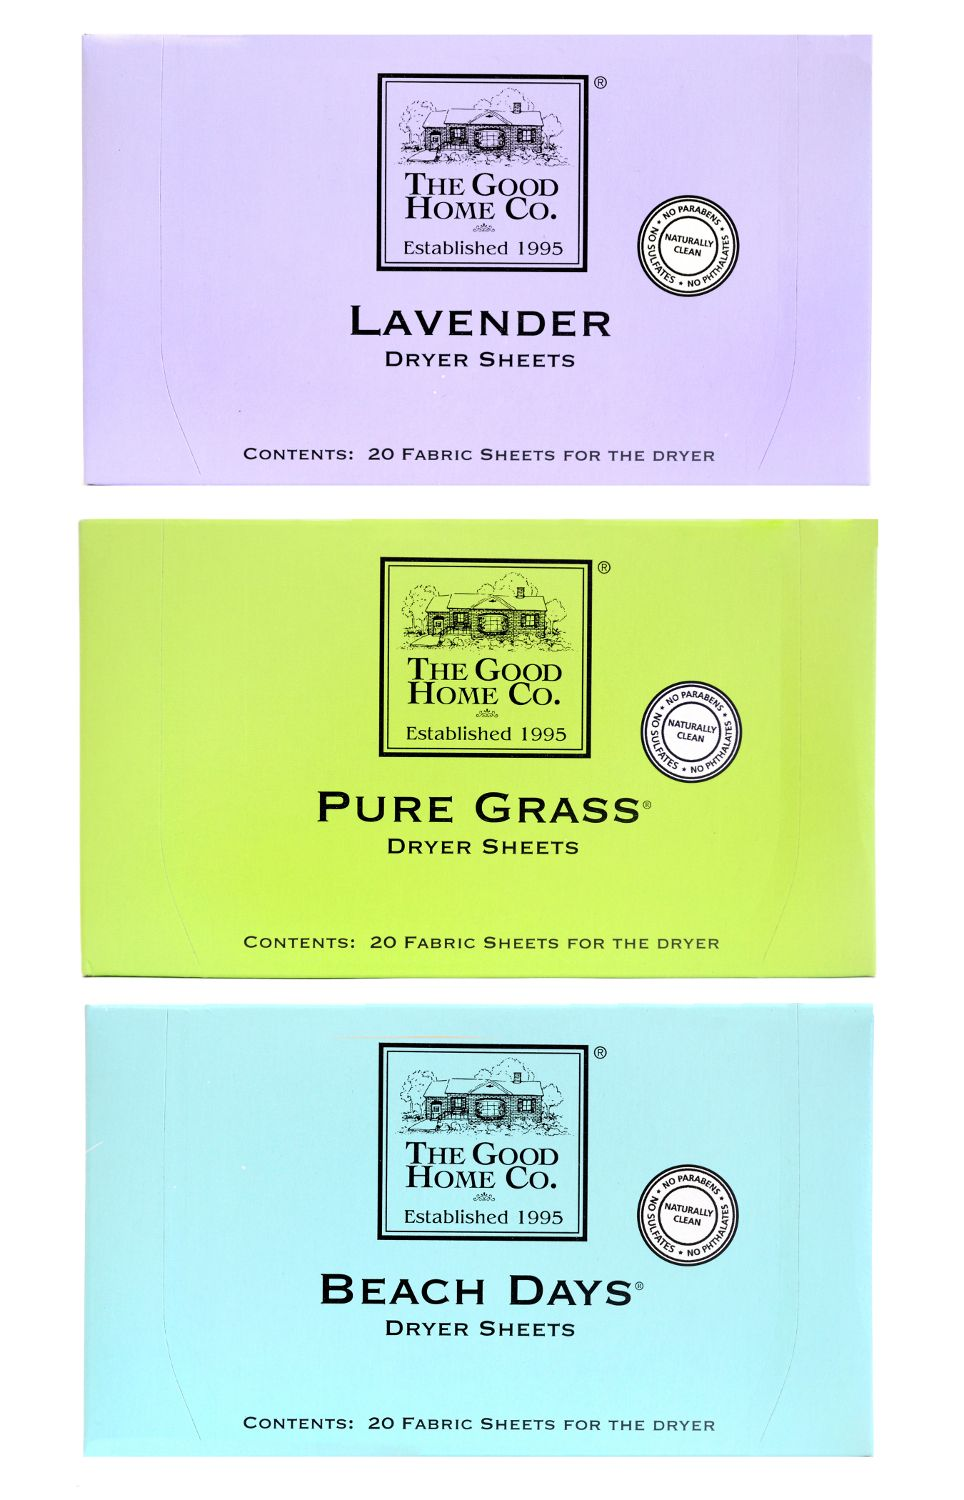 Scented Dryer Sheets from The Good Home Co.